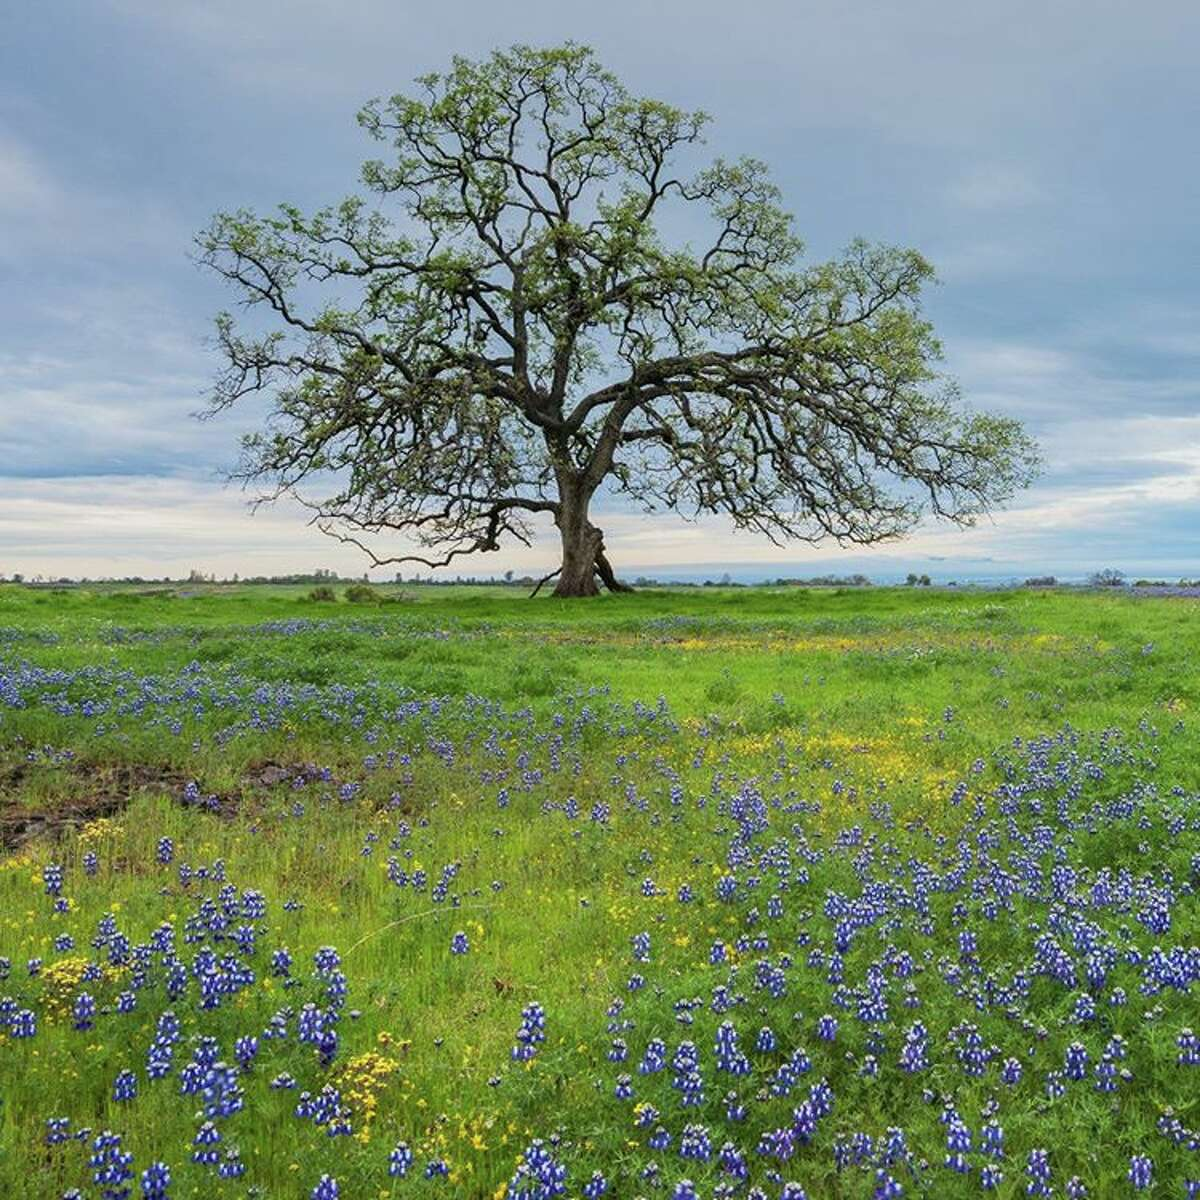 A dazzling array of flowers have been blooming in Butte County. Click through the gallery to see more. Via @johnnychien.photo